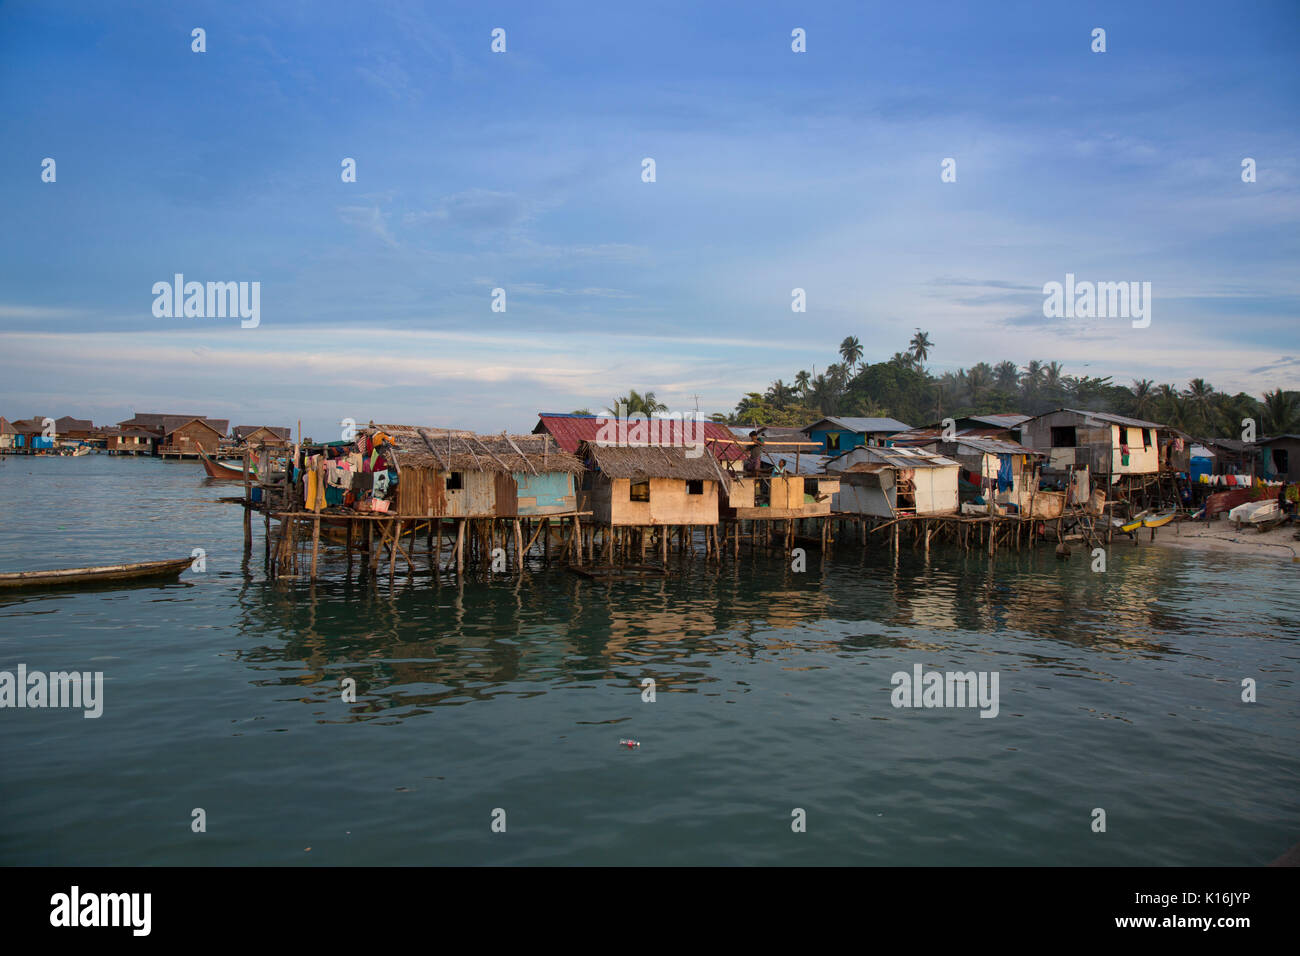 Minimalist dwellings on stilts in poor neighborhood on Mabul Island, Borneo - Stock Image